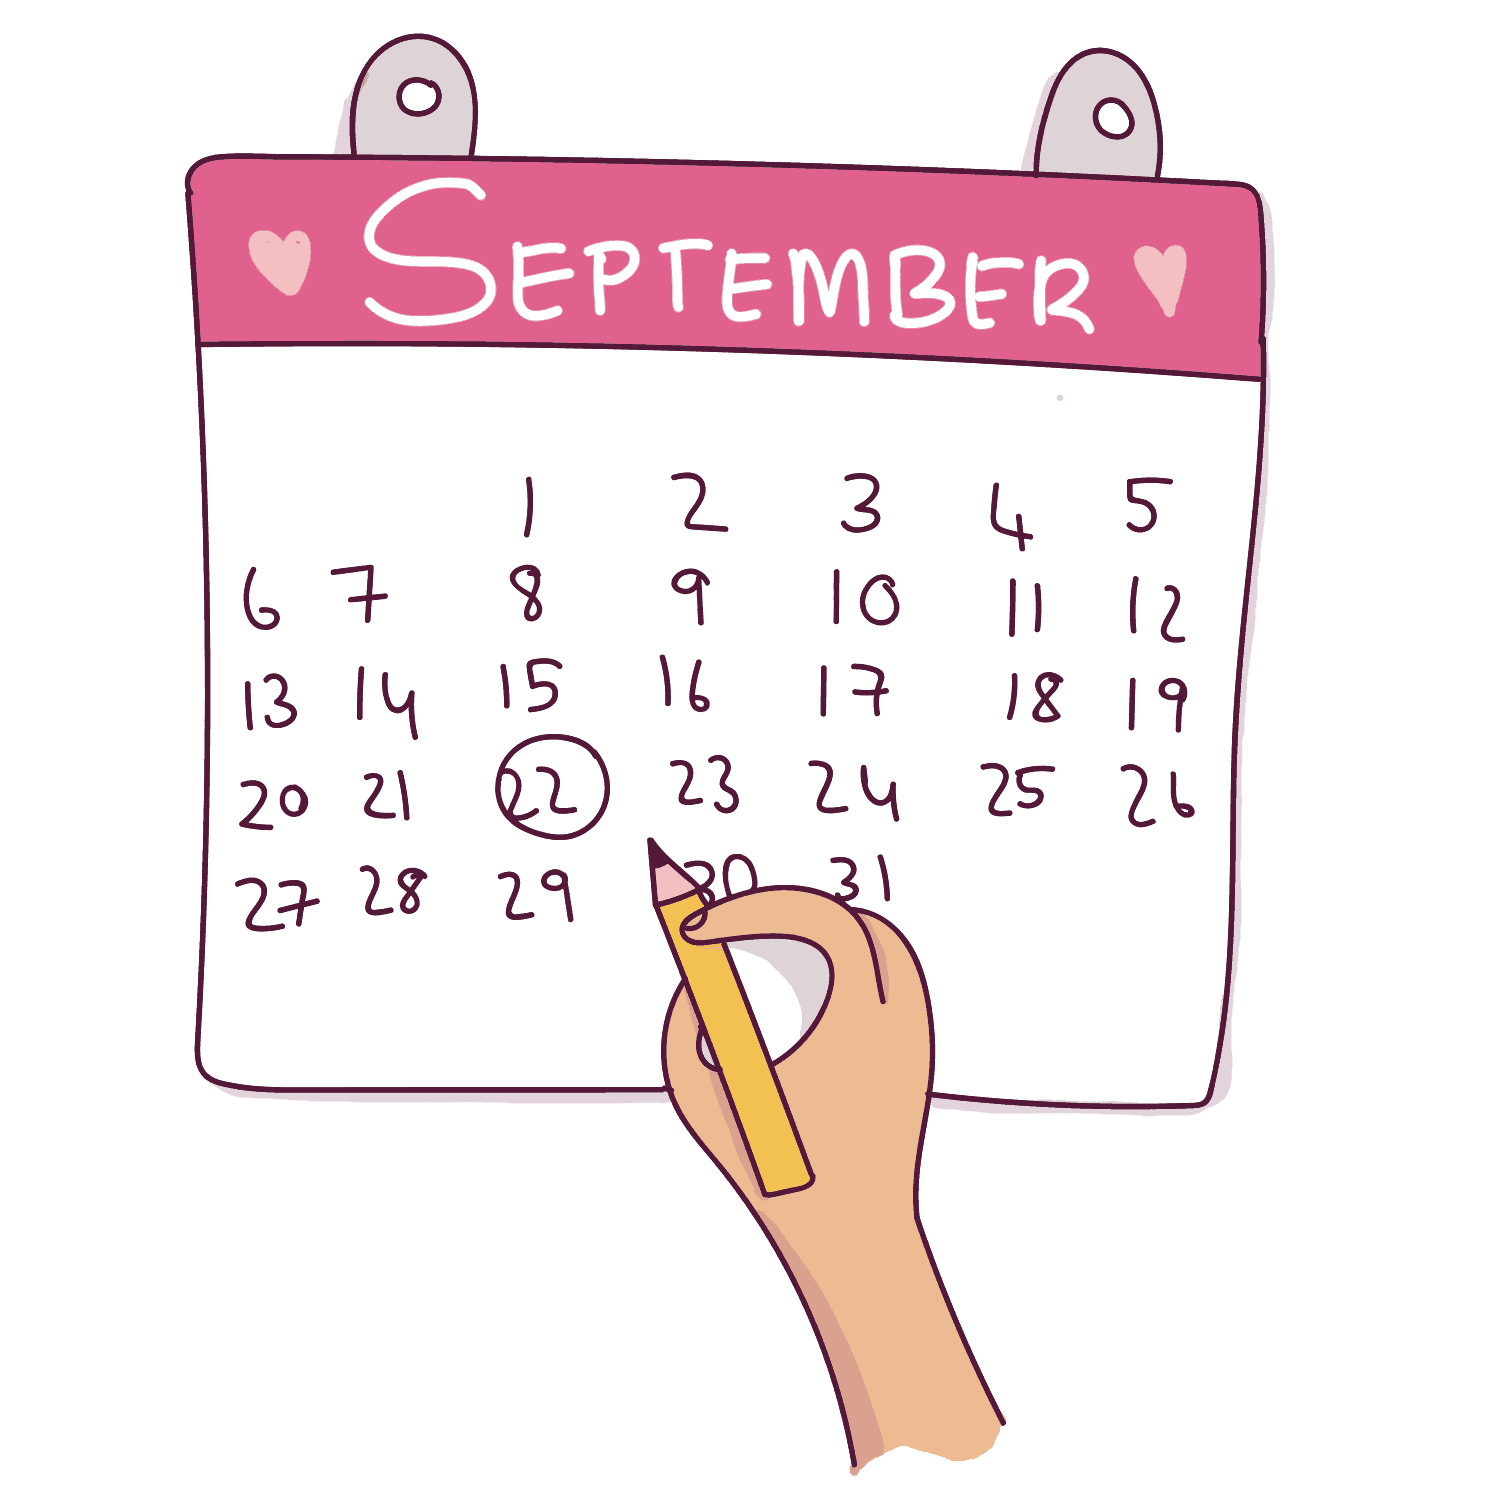 It is always a good idea to have an editorial calendar so that you can plan your blog post content in advance.